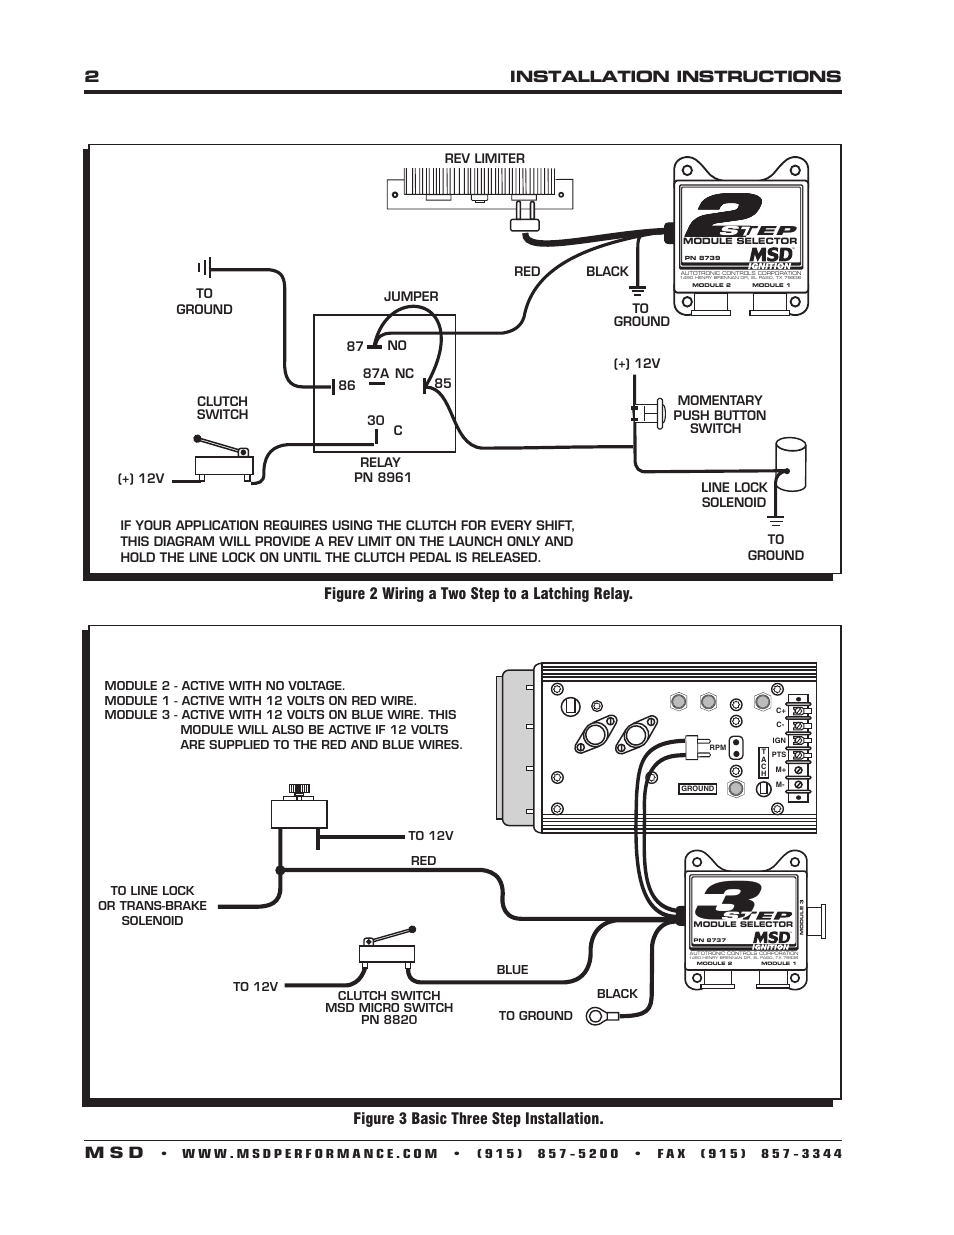 msd 8739 wiring diagram msd ignition wiring diagram chevy